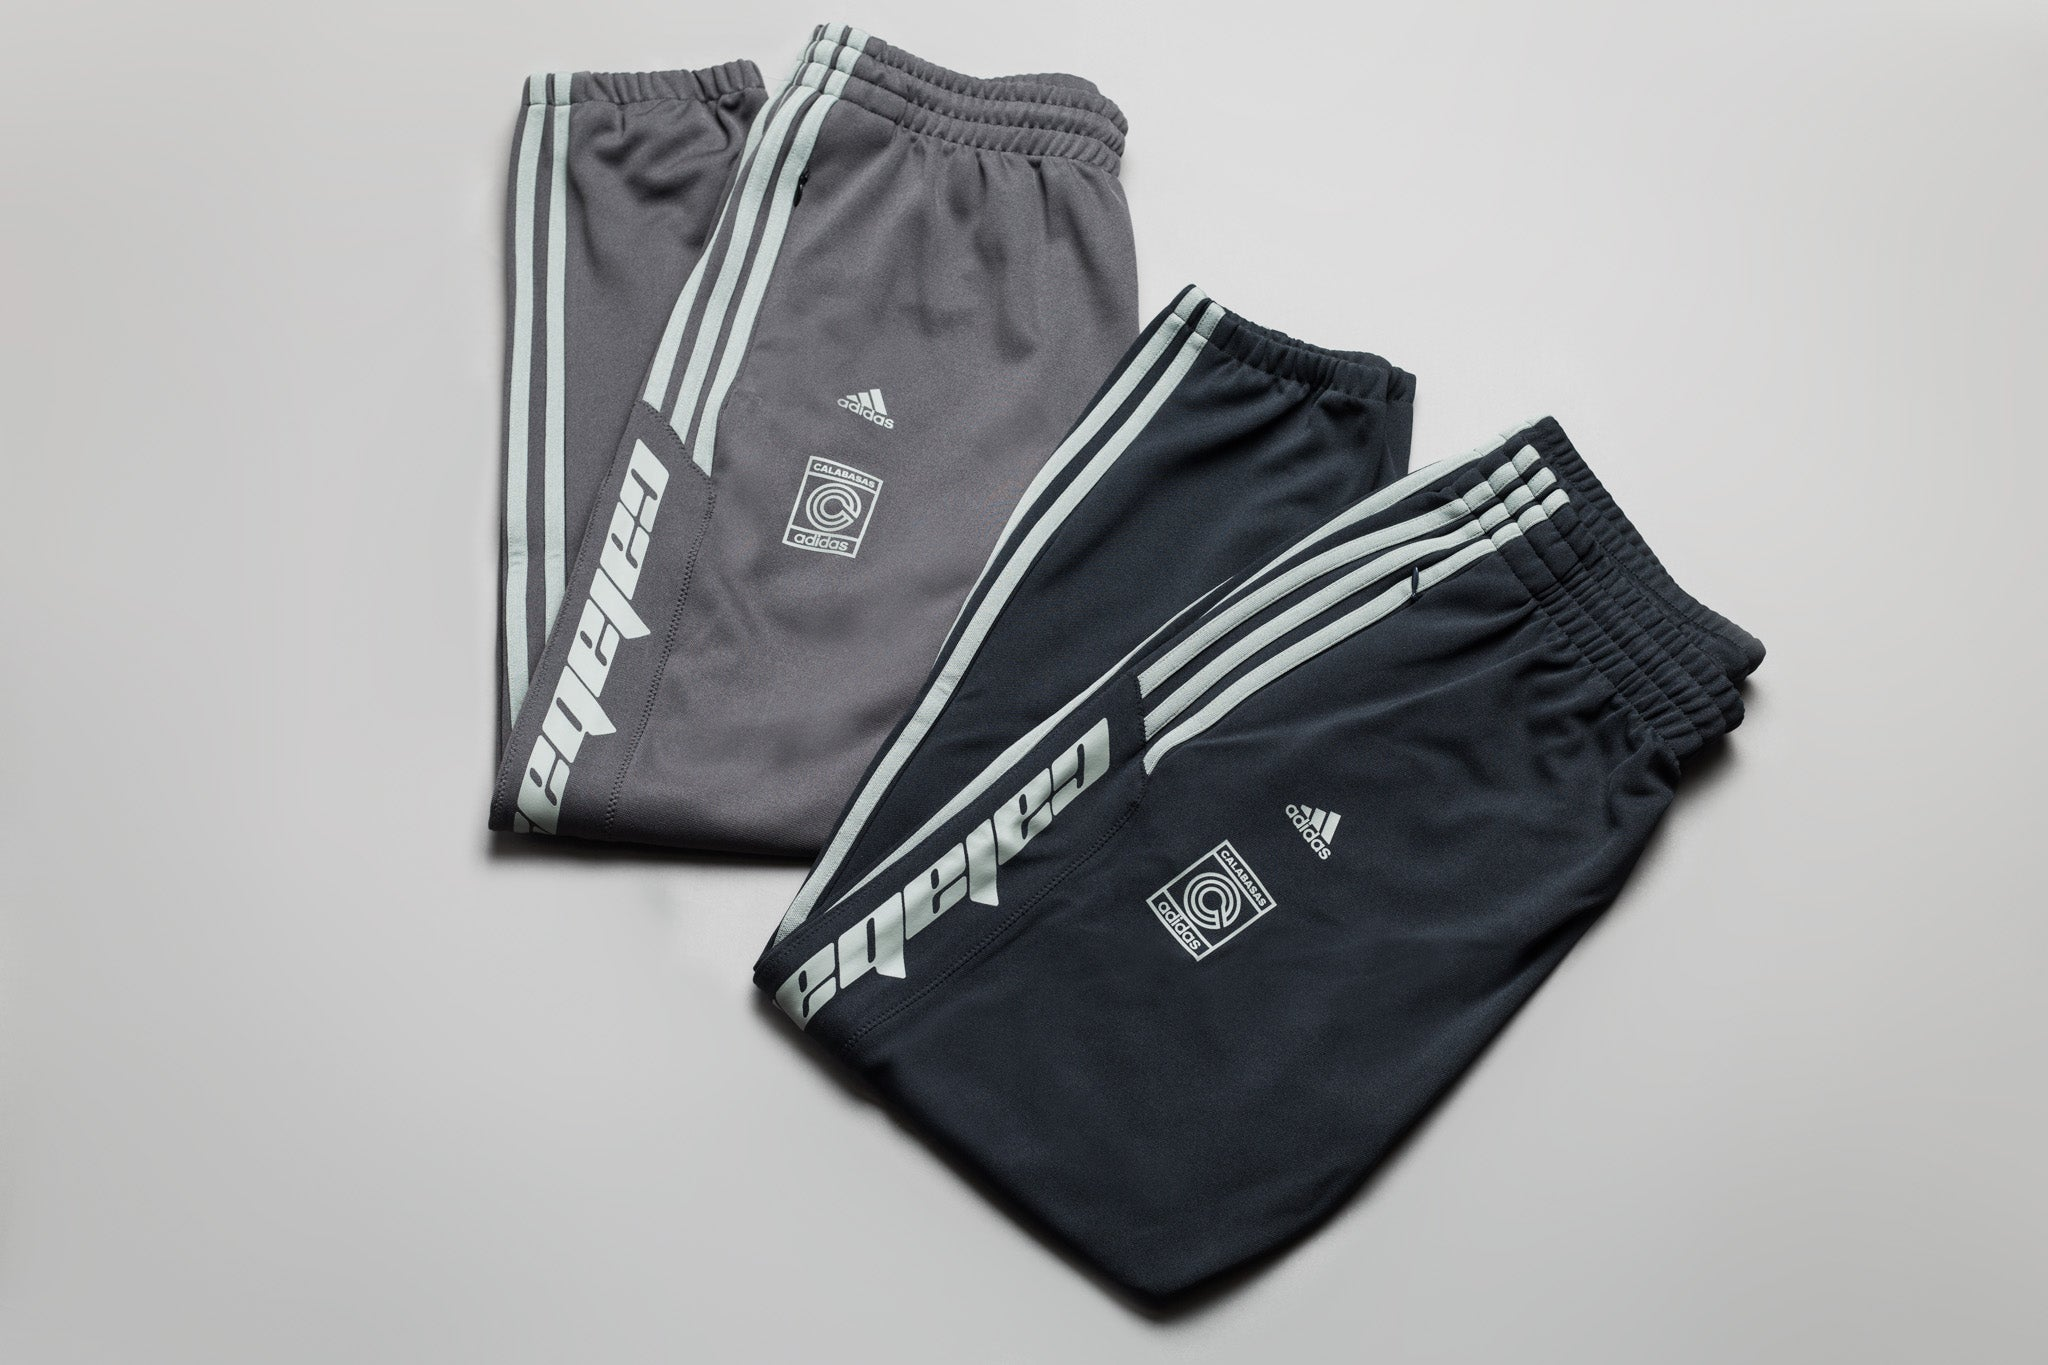 f81f1fc5 Kanye West and Adidas' Calabasas Track Pants return in two new colourways to  match with the upcoming Yeezy 700 on the horizon. The Calabasas Pants are  made ...